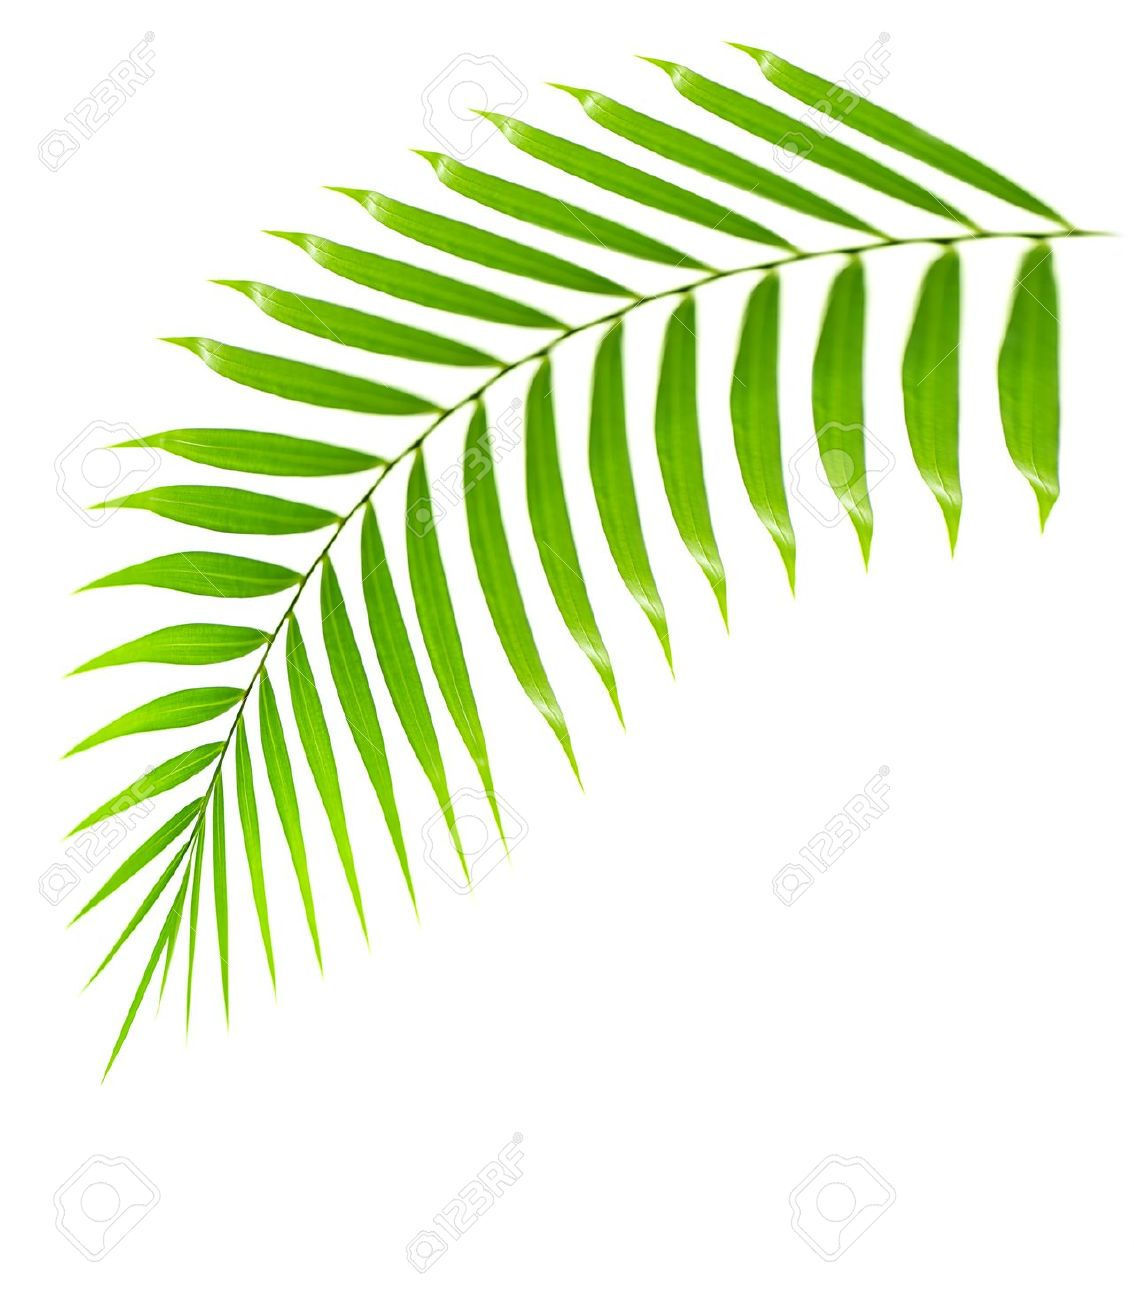 Palm fronds clipart #2